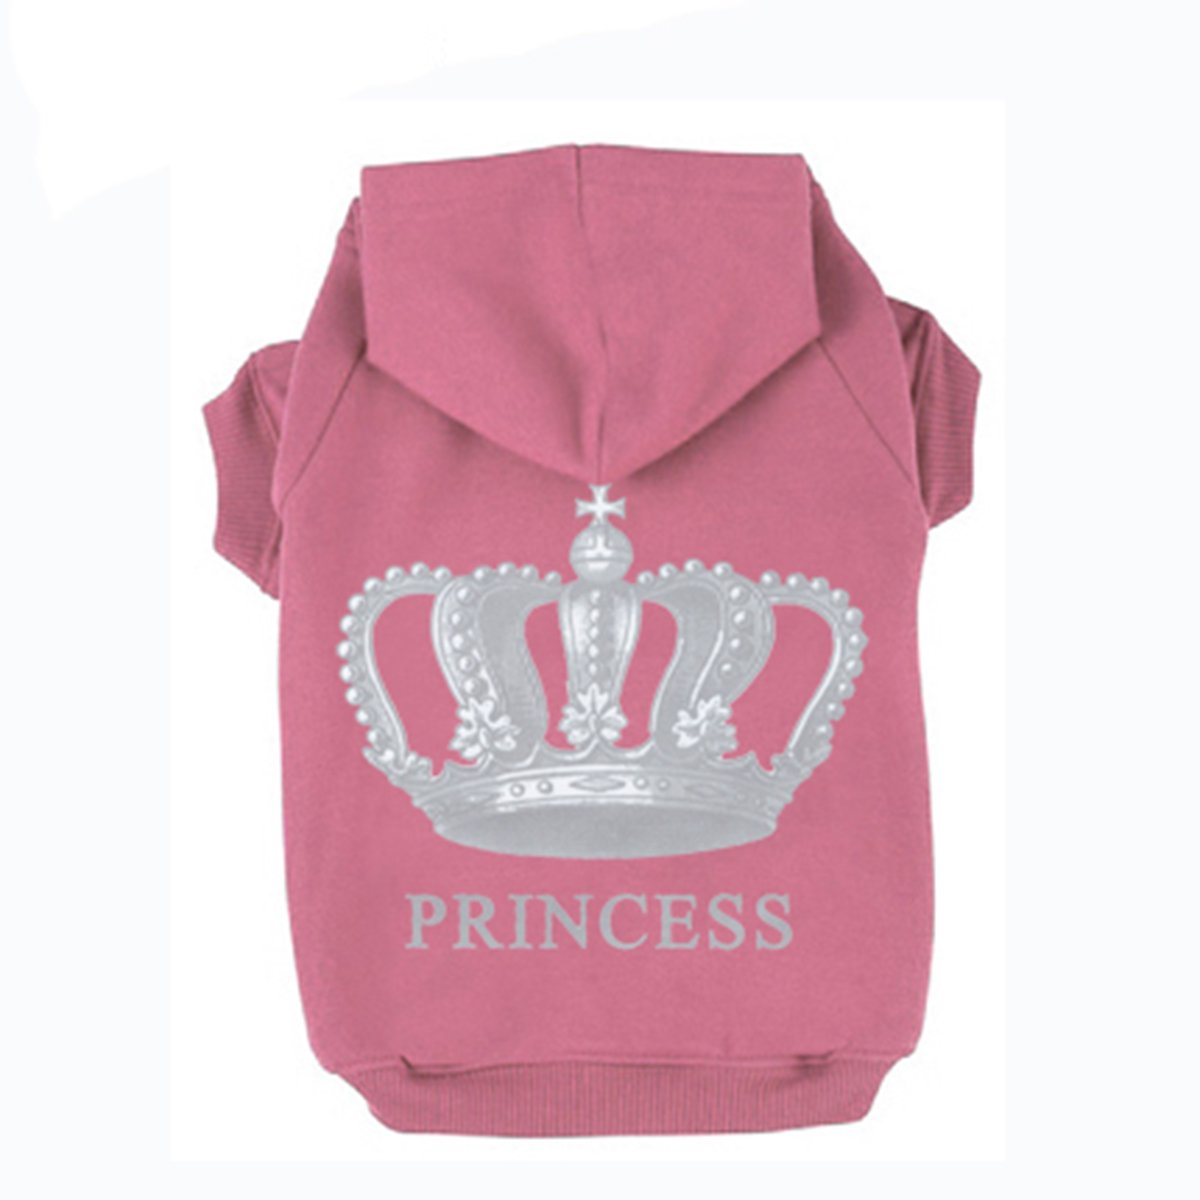 EXPAWLORER Princess Dog Cat Fleece Sweatshirt Hoodies Pink Small HAOBO bvsd